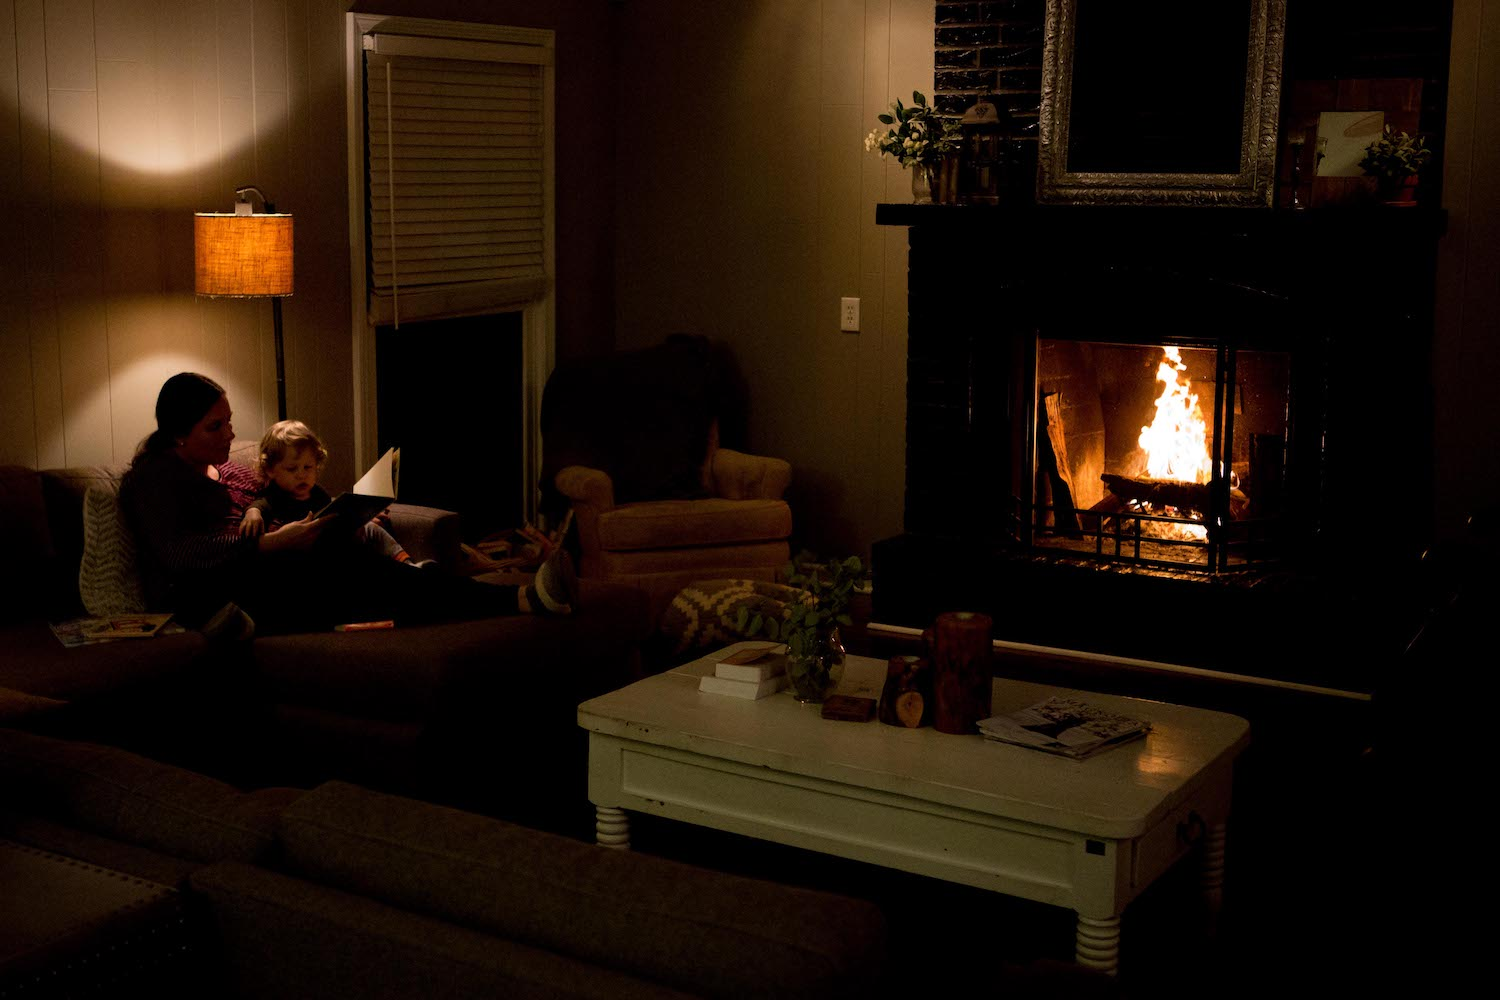 Evening books by the fire.